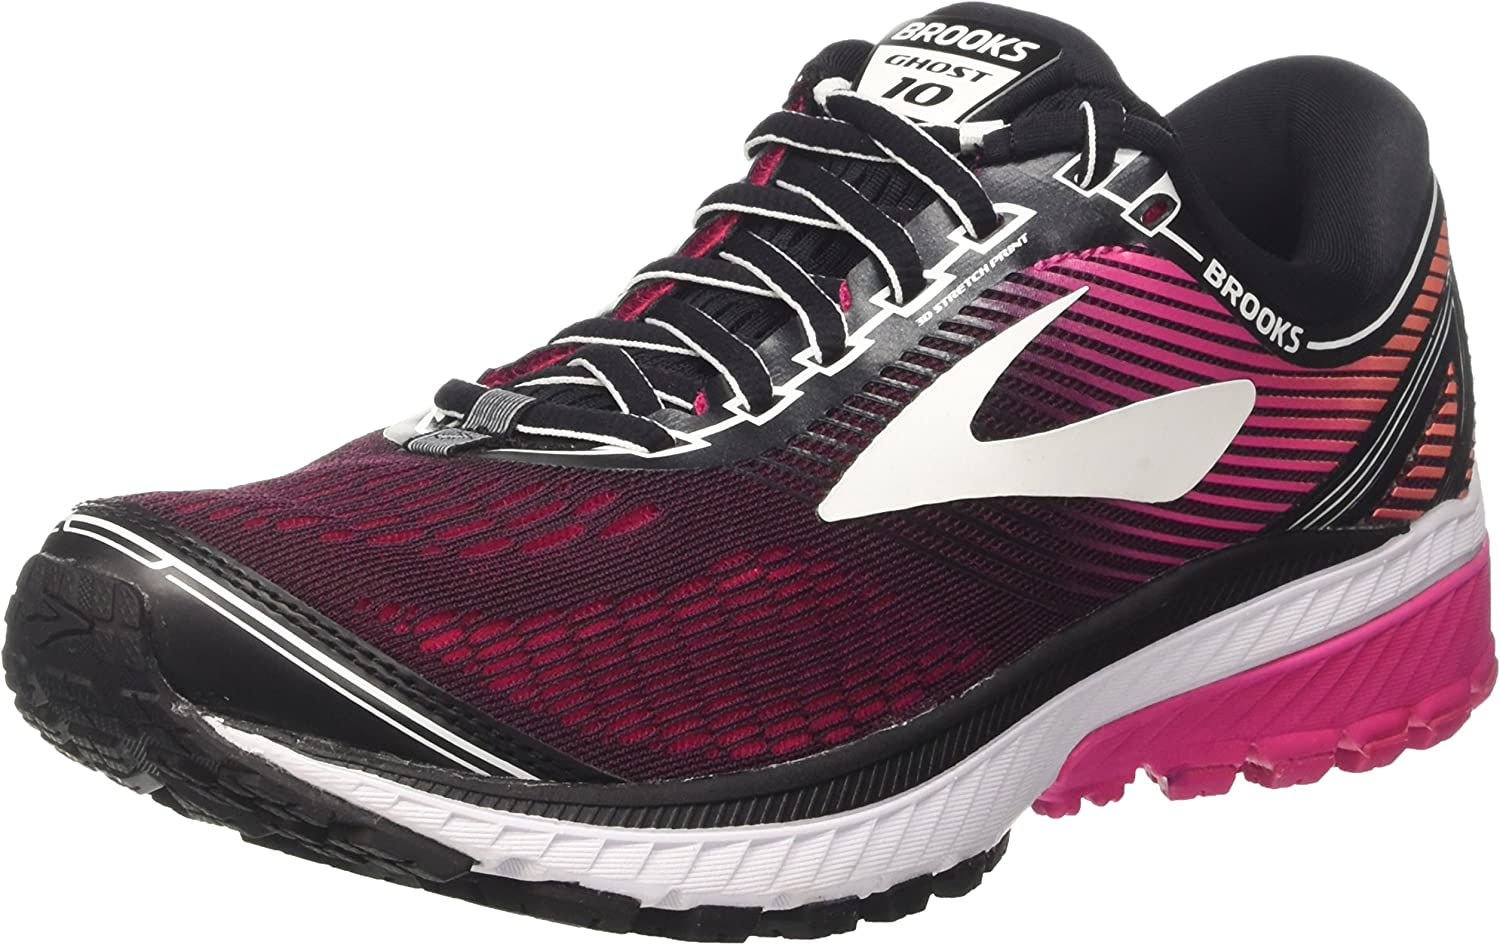 Brooks Ghost 10, Zapatillas de Running para Mujer, Multicolor (Blackpinkpeacocklivingcoral 1b067), 35.5 EU: Amazon.es: Zapatos y complementos